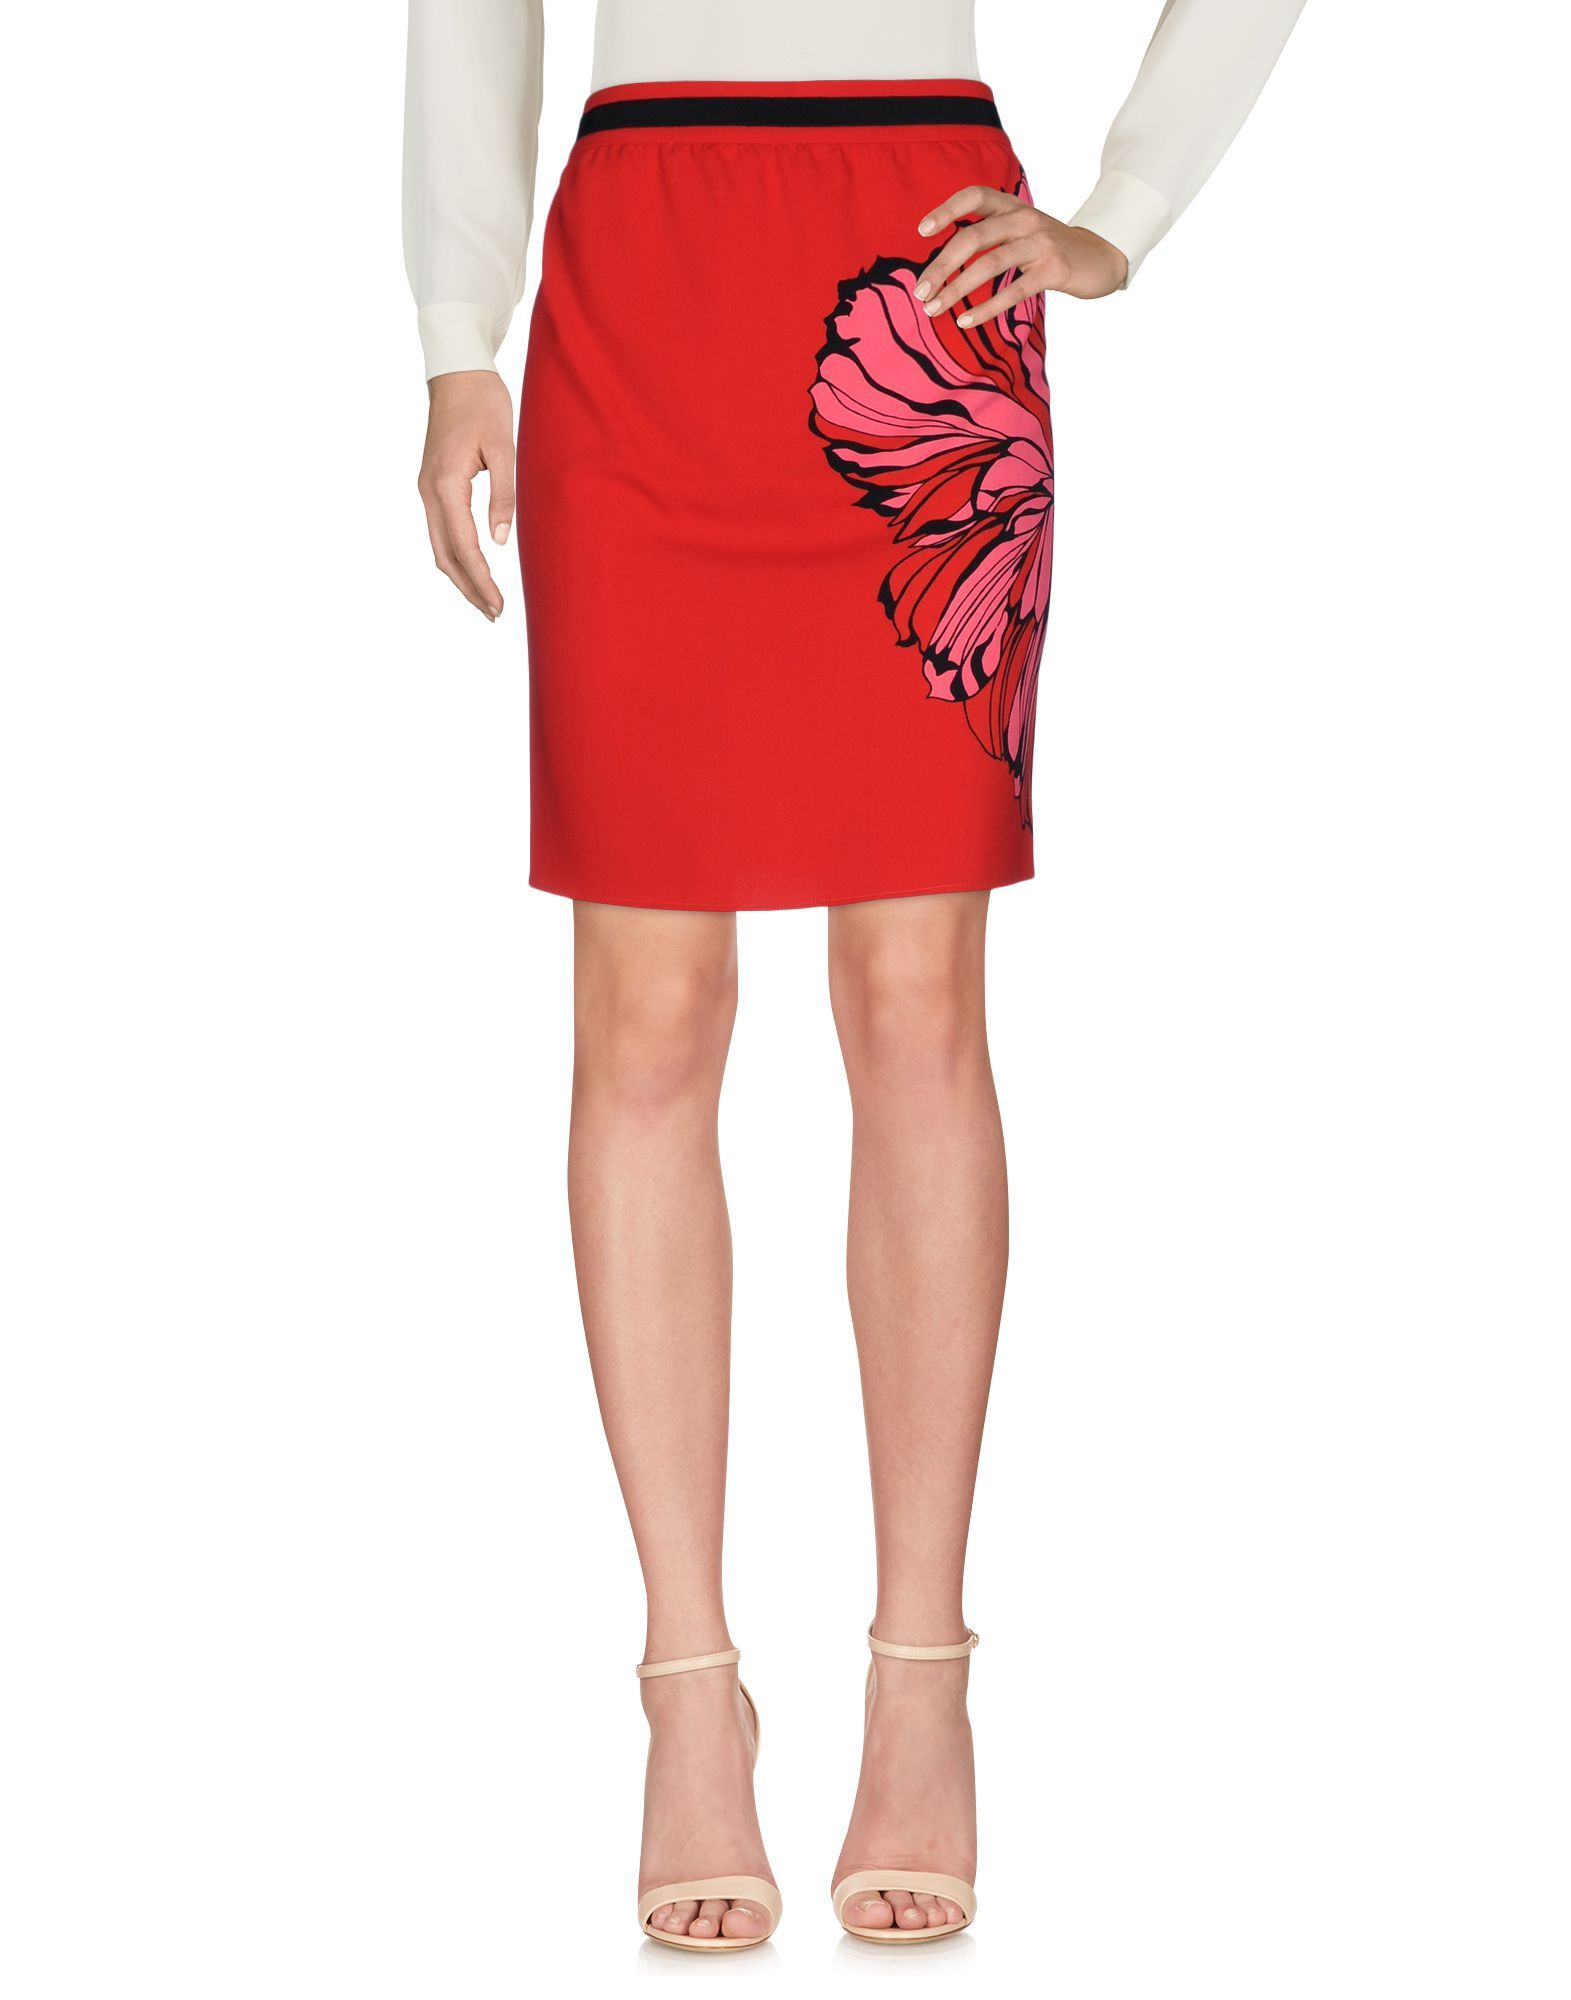 Liu Jo Red Print Short Skirt